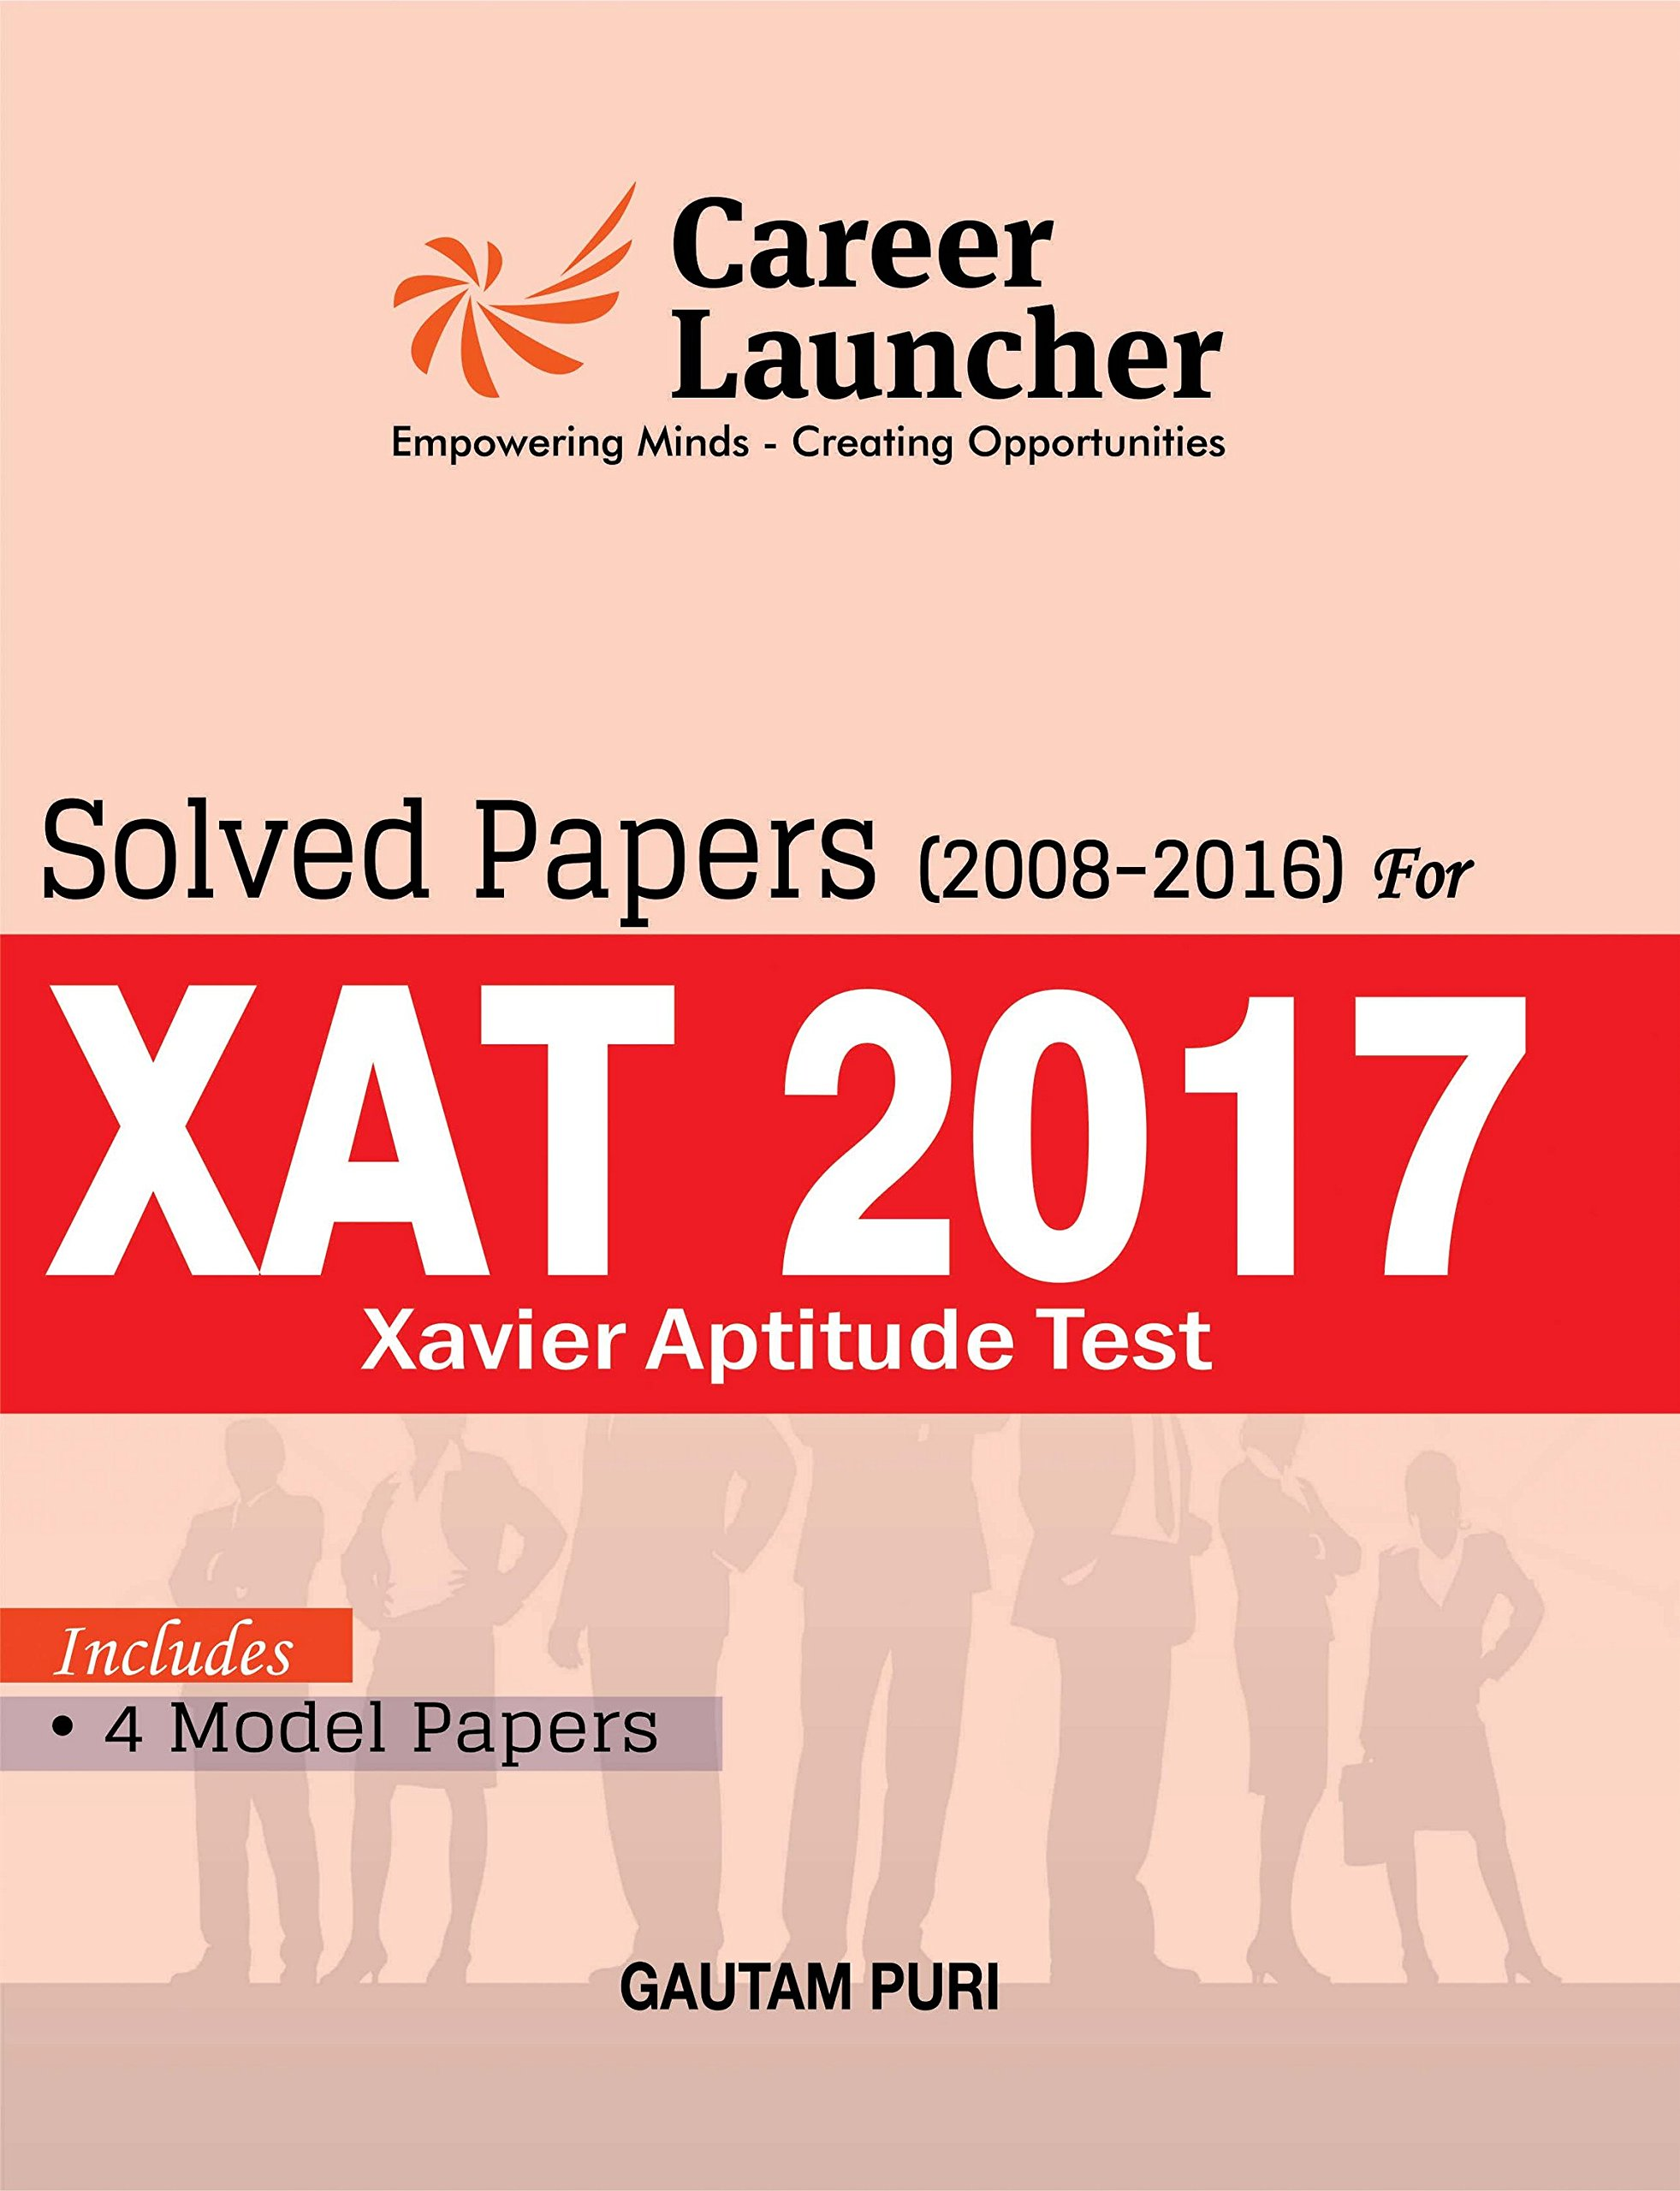 xat essay concluding paragraph essay example application essay  buy xat solved papers full length model papers buy xat solved papers 2008 2016 full length xat preparation and coaching for decision making general